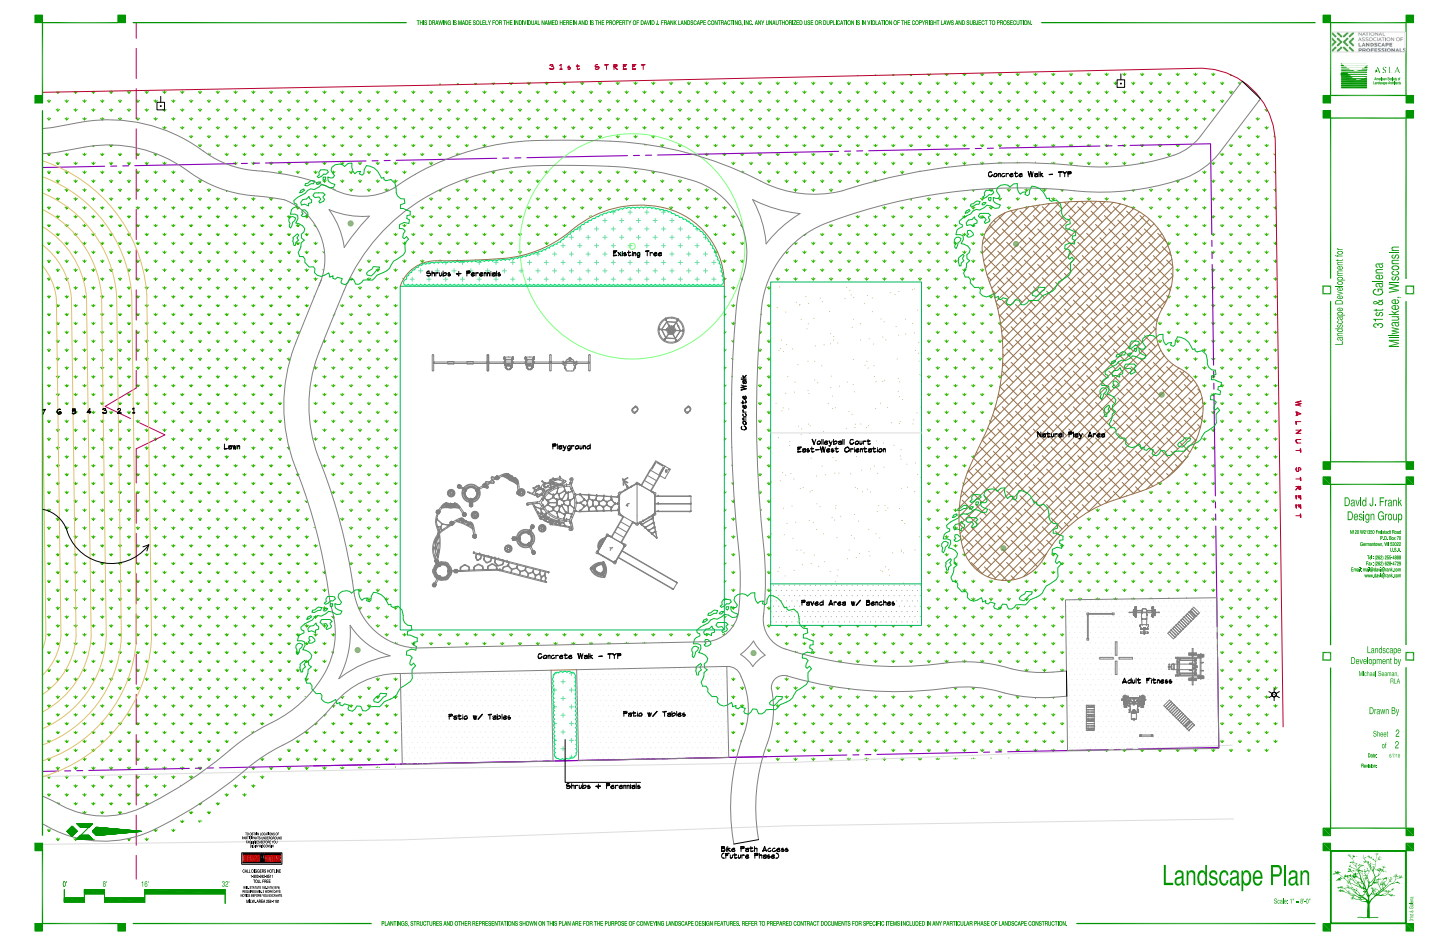 31st and Galena Park Plan